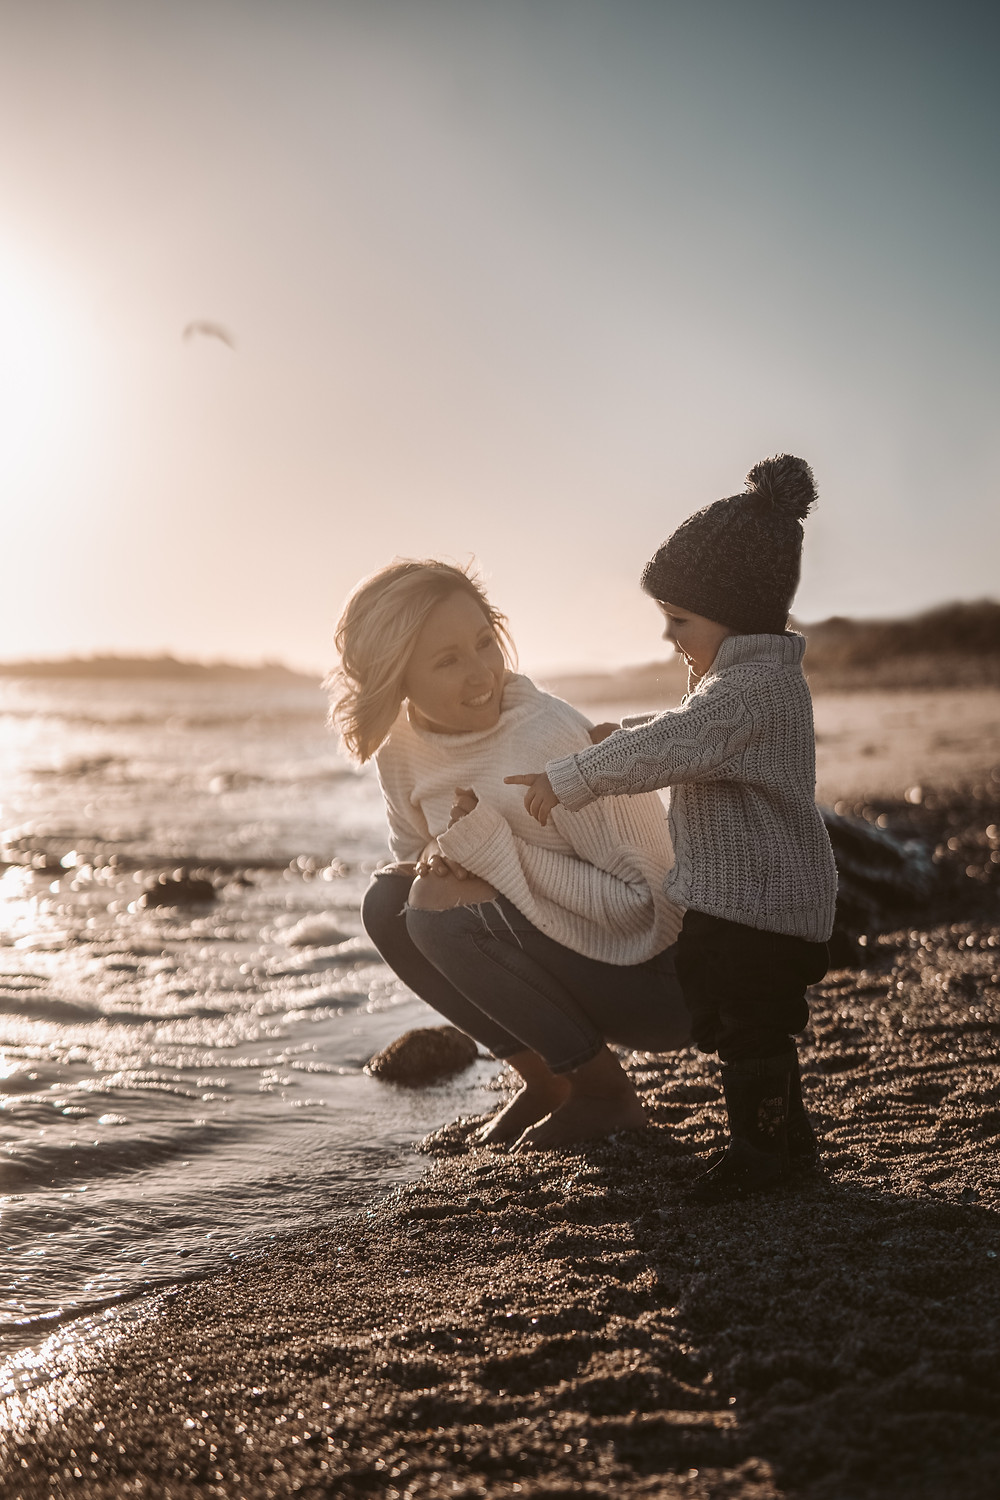 Mother and child at beach